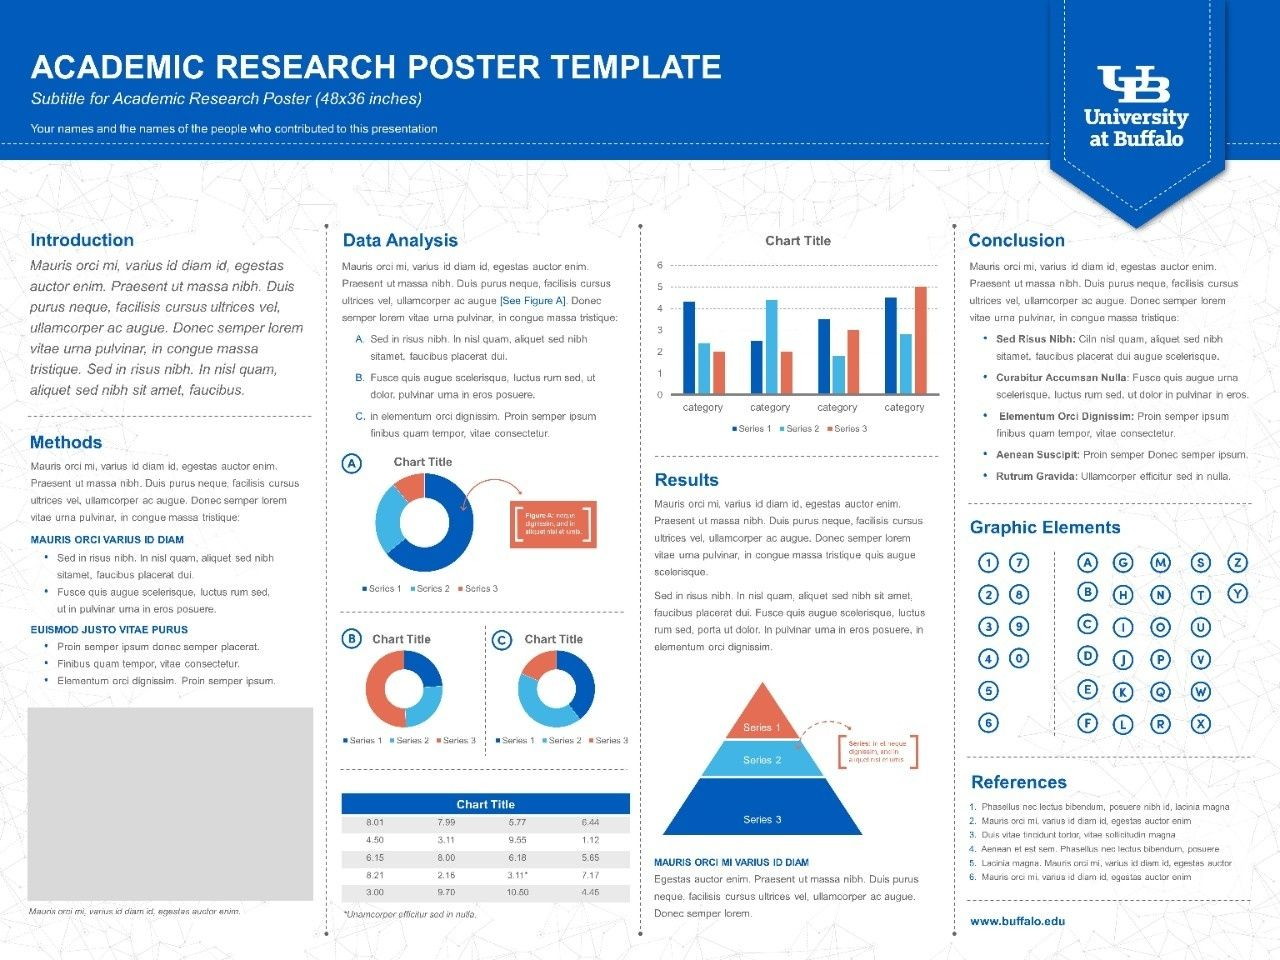 028 Lovely Poster Template Powerpoint 36x48 Scientific Throughout Powerpoint Poster Tem In 2020 Poster Presentation Template Powerpoint Poster Template Research Poster